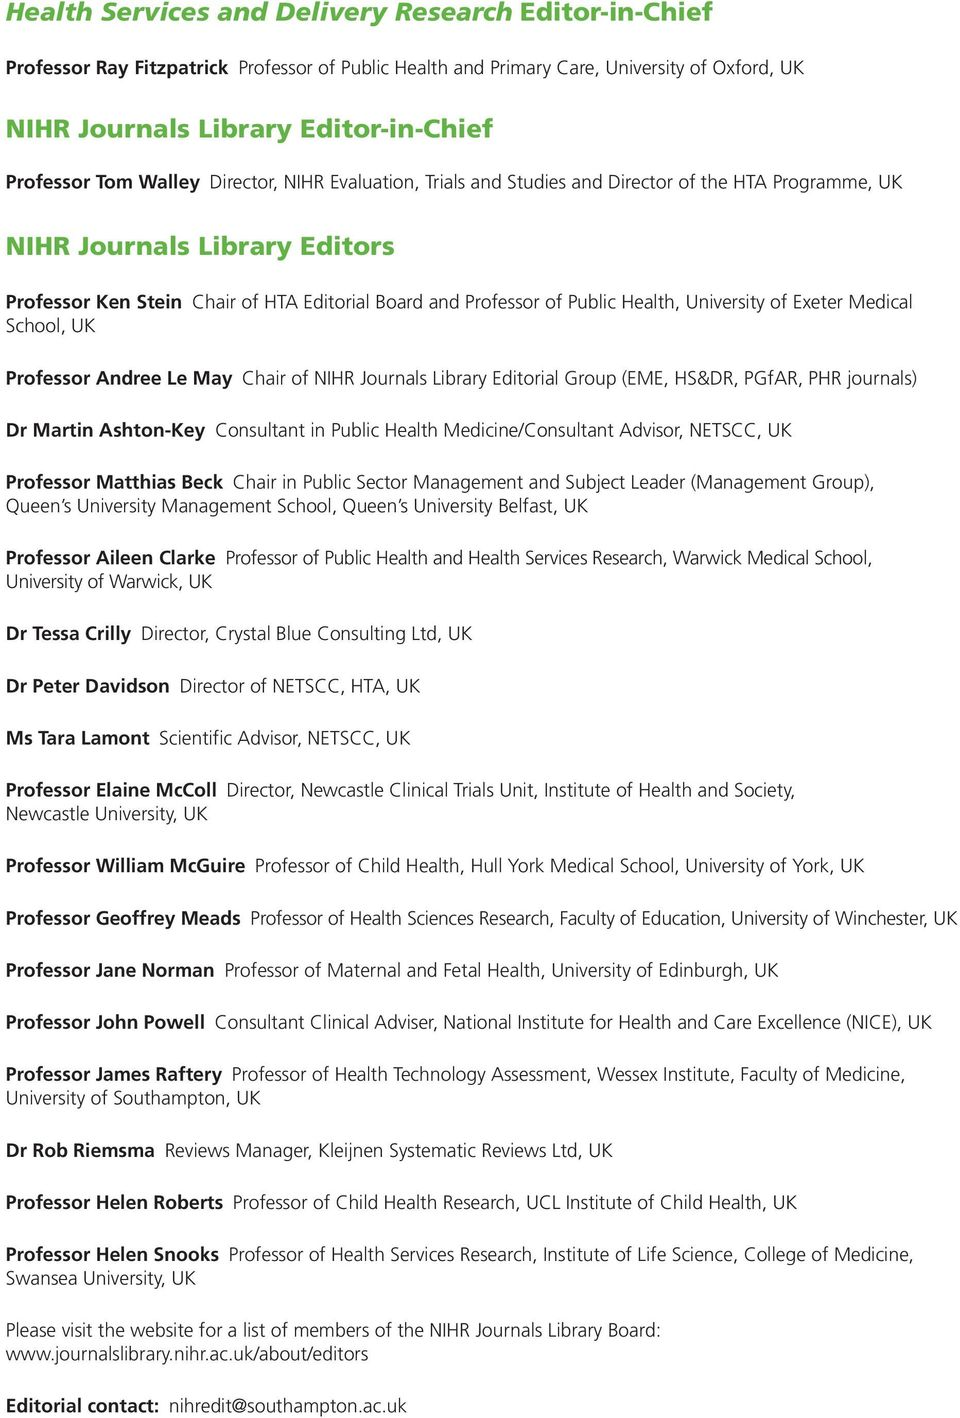 University of Exeter Medica Schoo, UK Professor Andree Le May Chair of NIHR Journas Library Editoria Group (EME, HS&DR, PGfAR, PHR journas) Dr Martin Ashton-Key Consutant in Pubic Heath